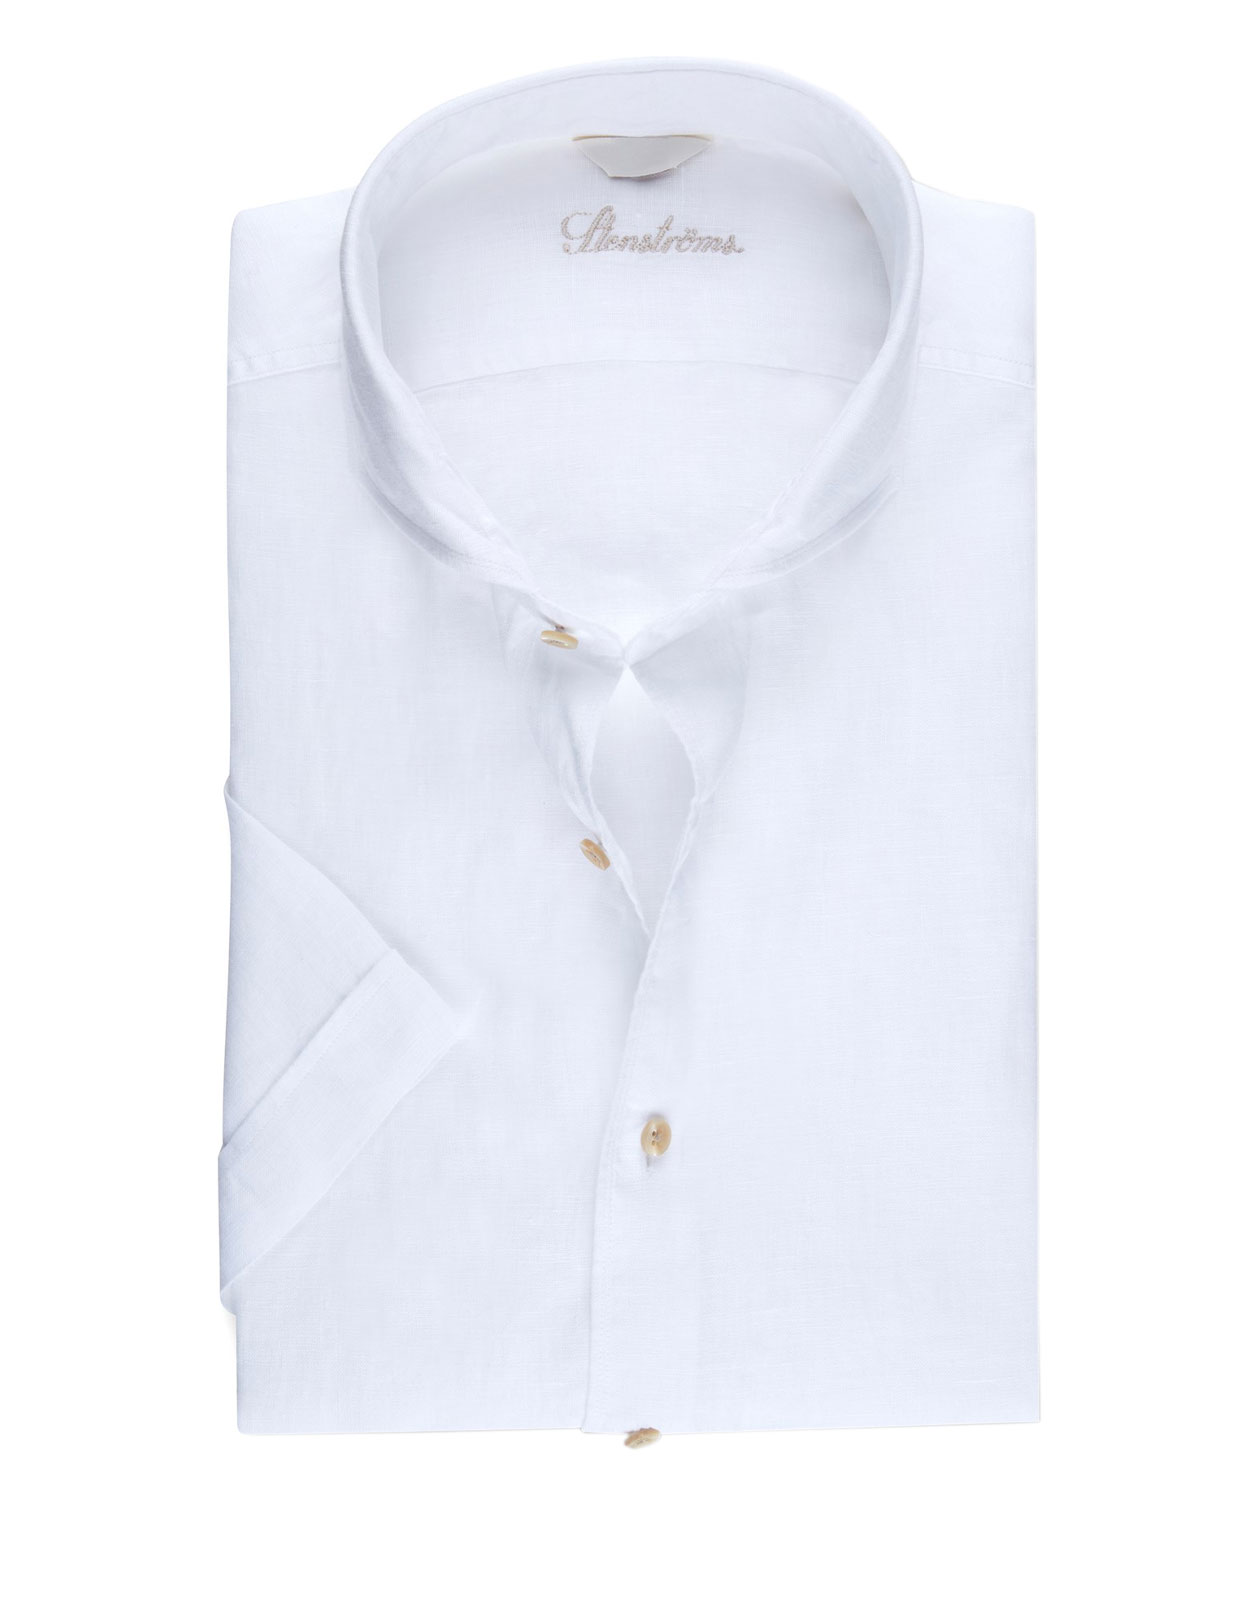 Fitted Body Short Sleeves Linen Shirt White